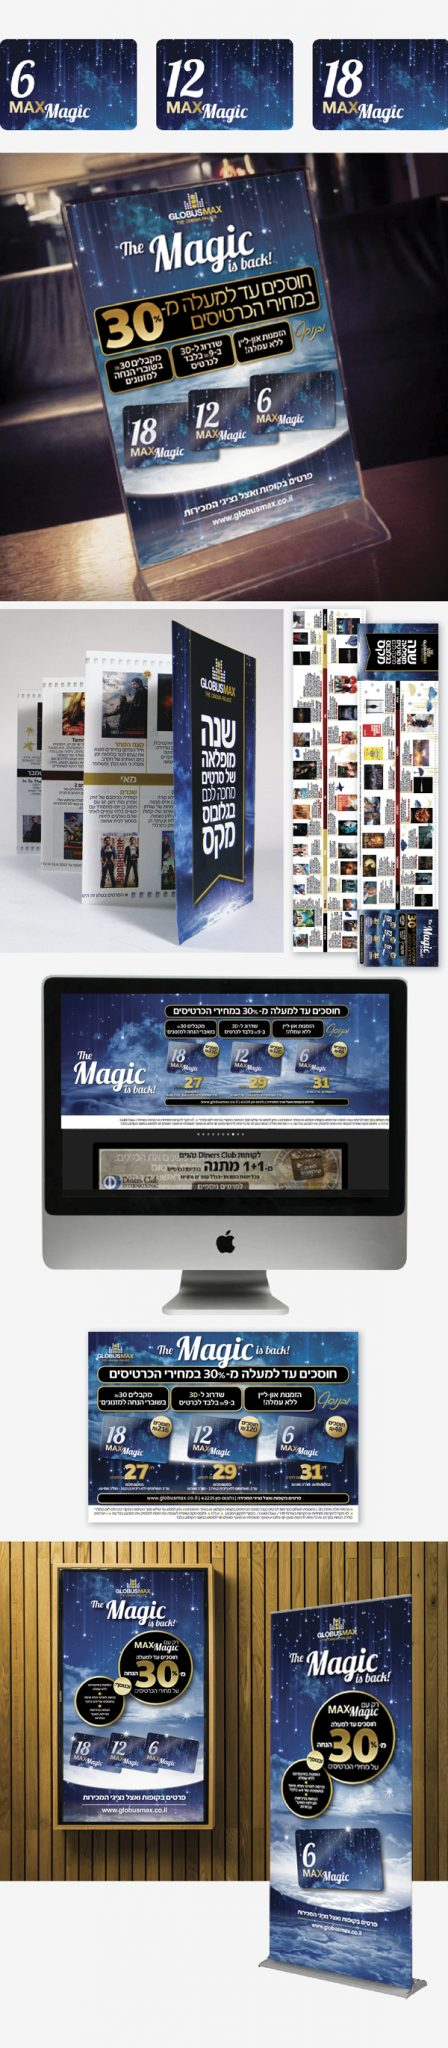 print design, flyer, magnetic cards, website, design, rollup